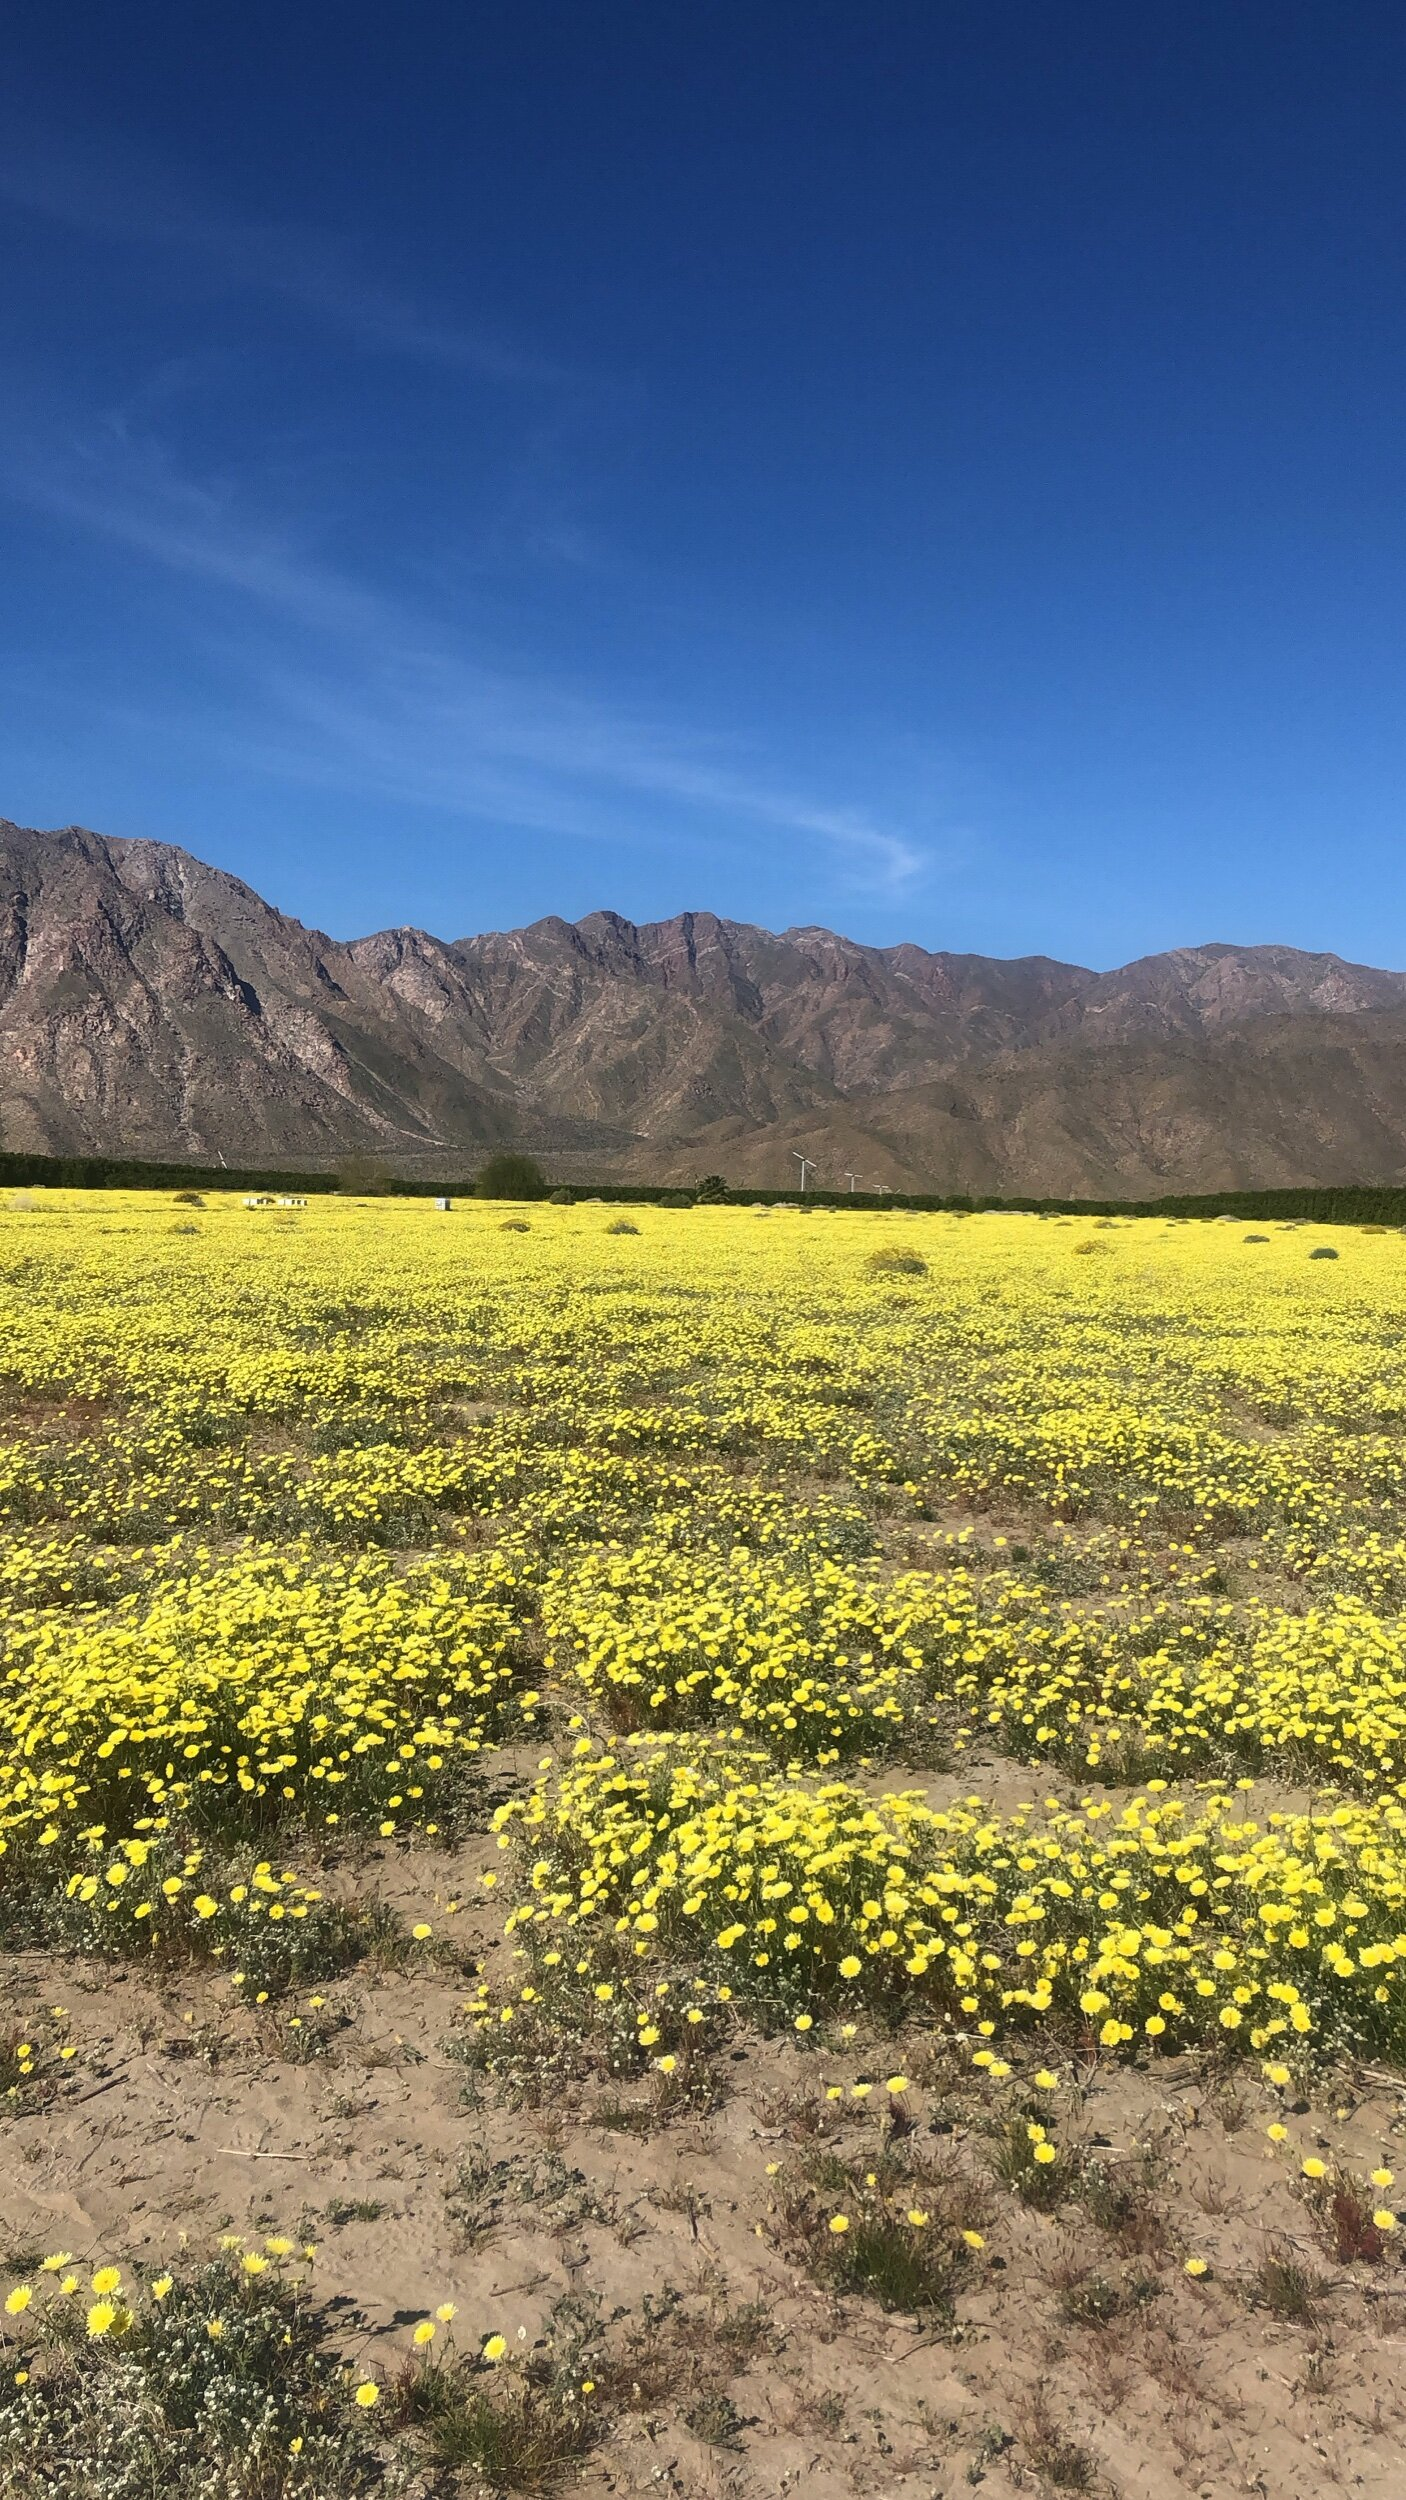 Saw the California desert superbloom